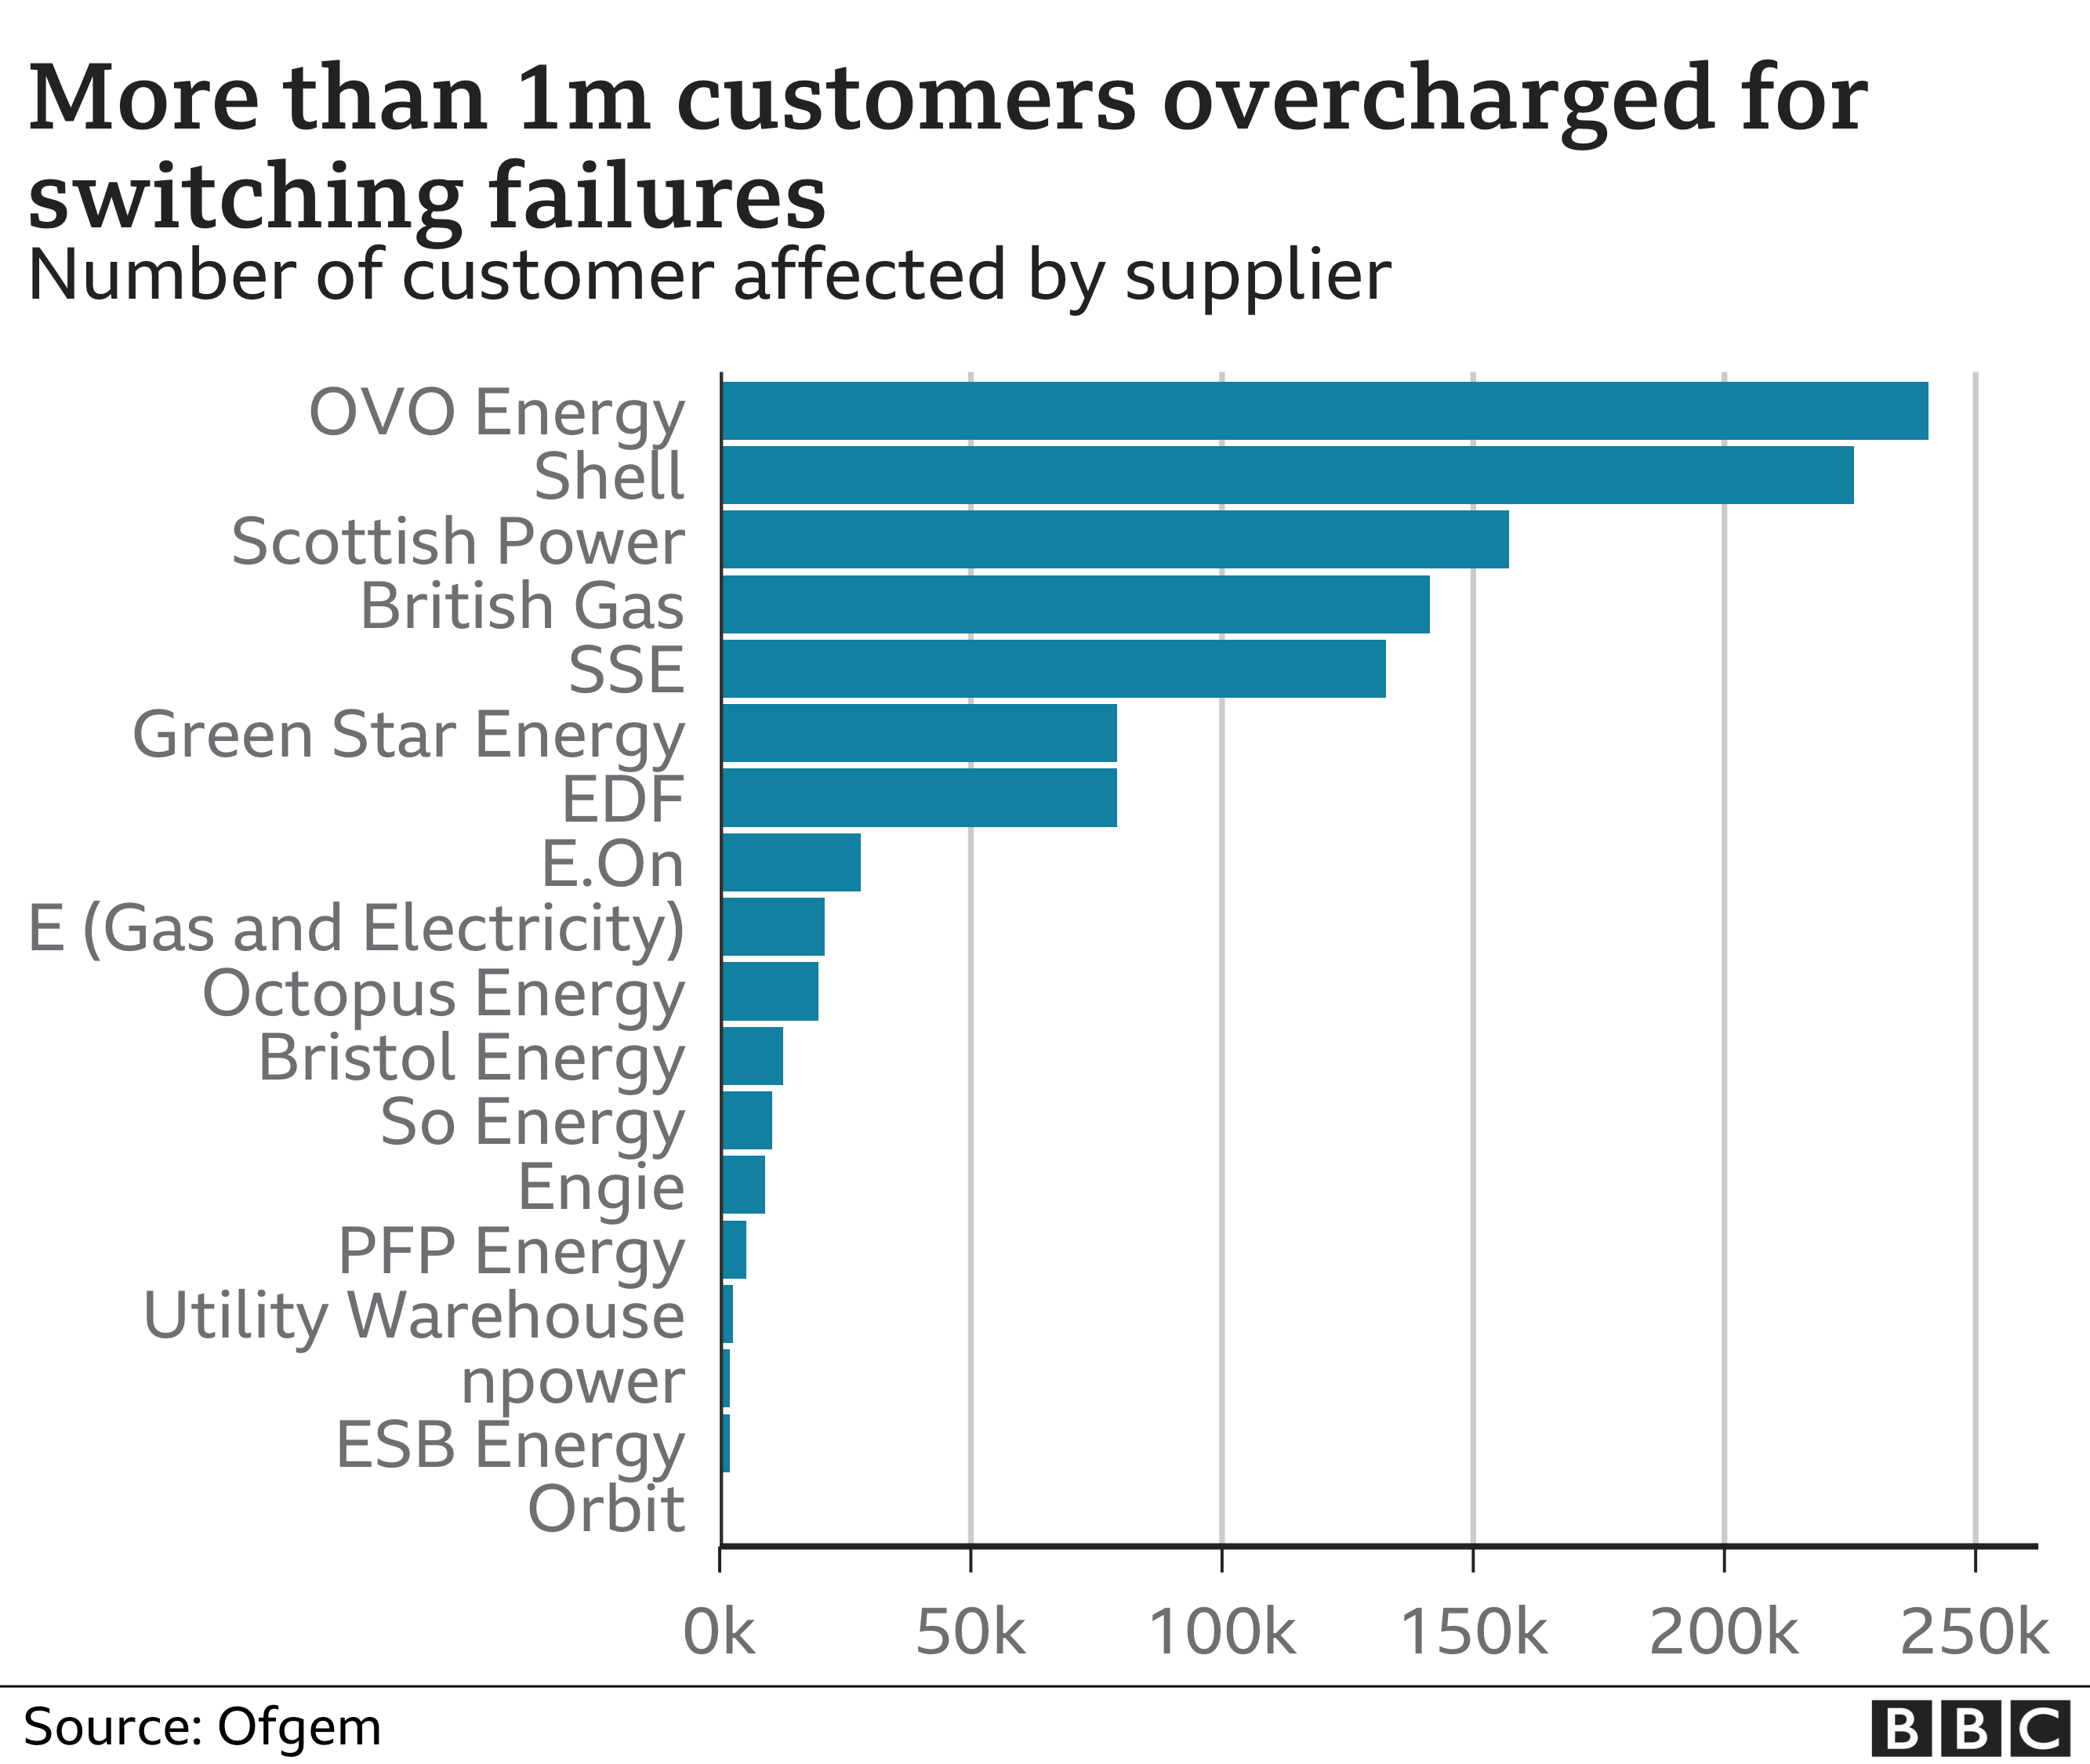 Charts showing number of customers overcharged for switching failures